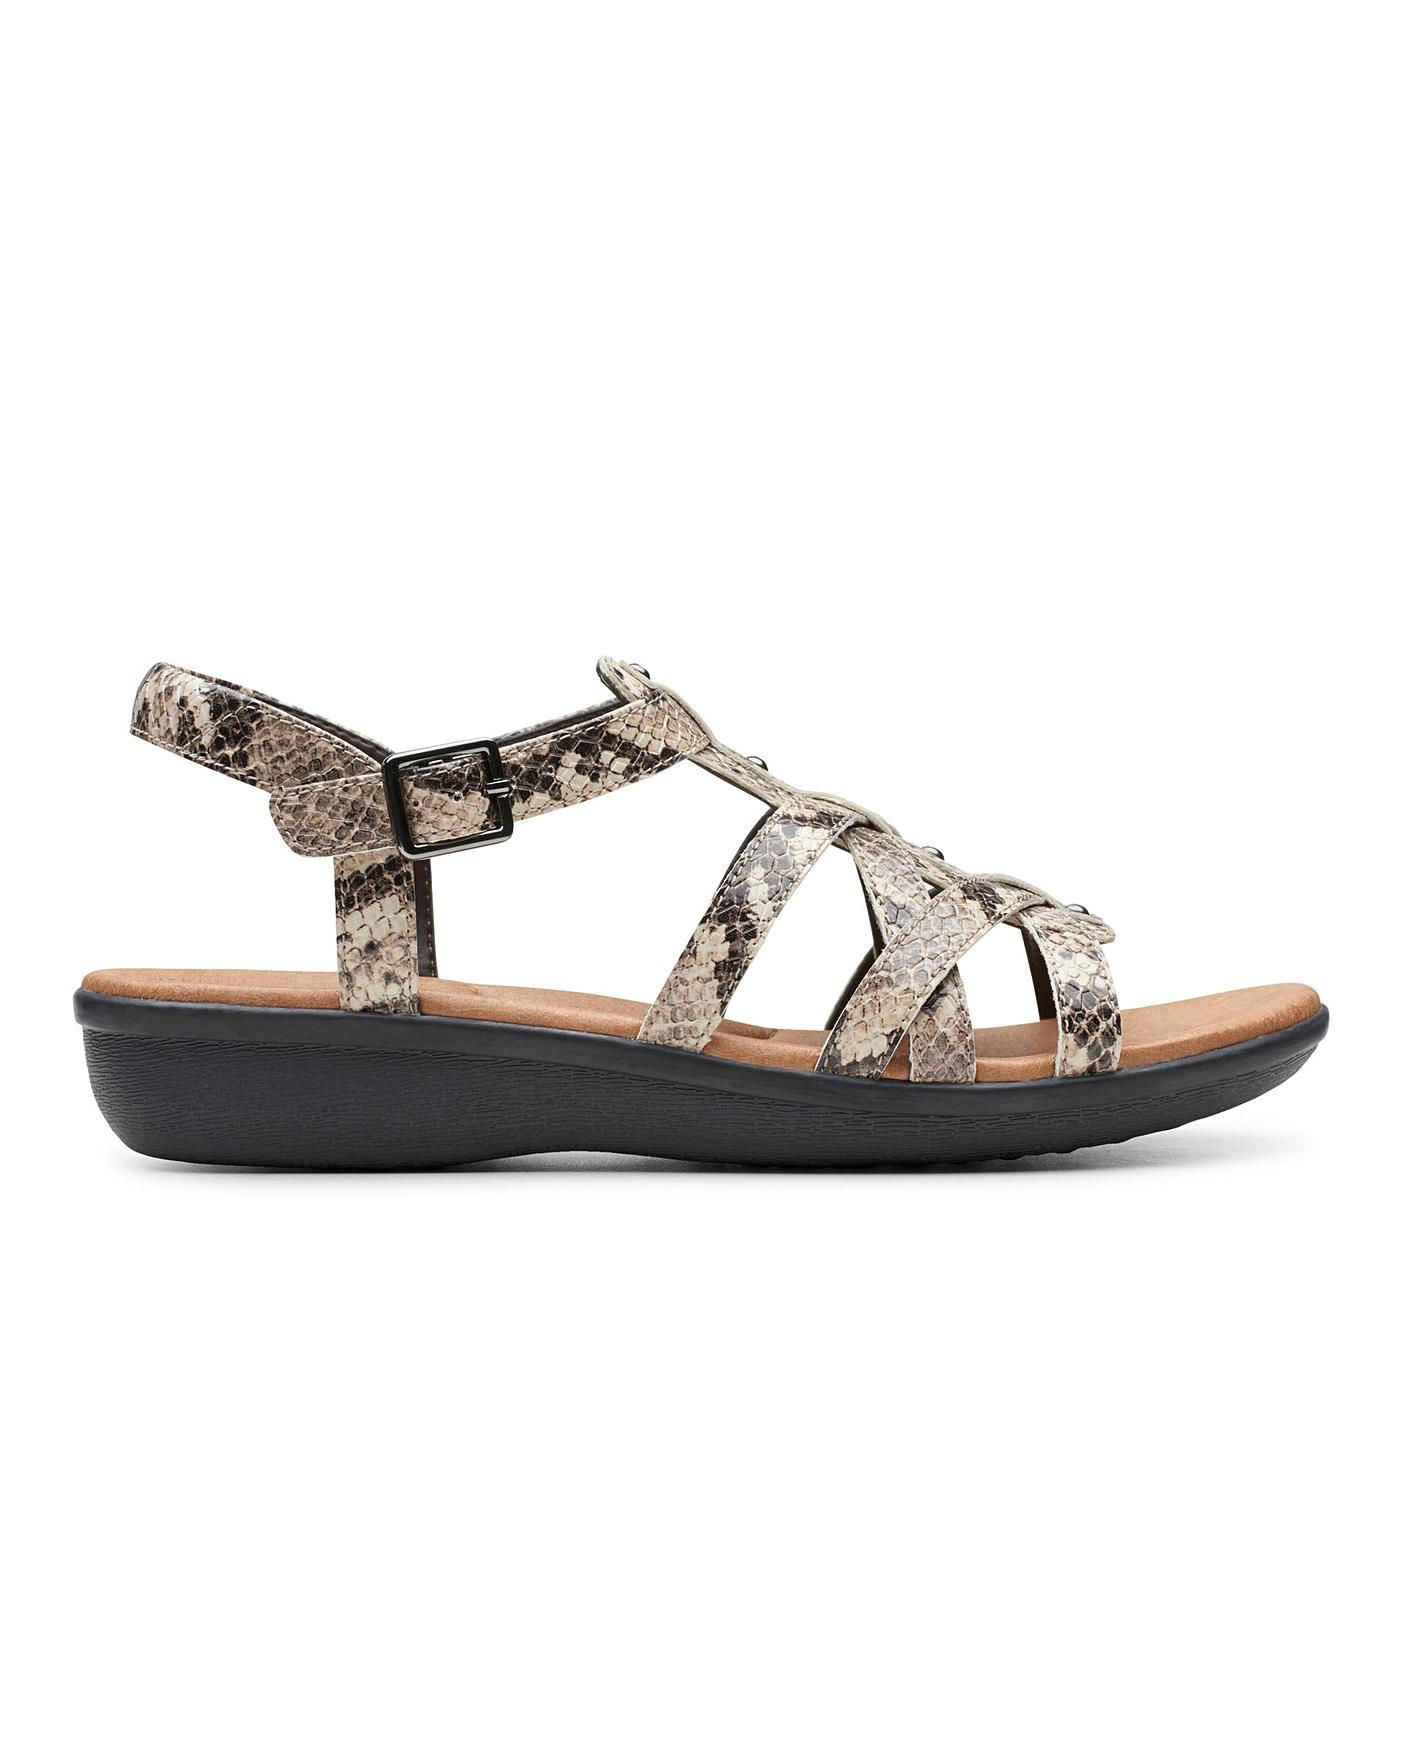 Clarks Sandals Standard D Fit | Simply Be